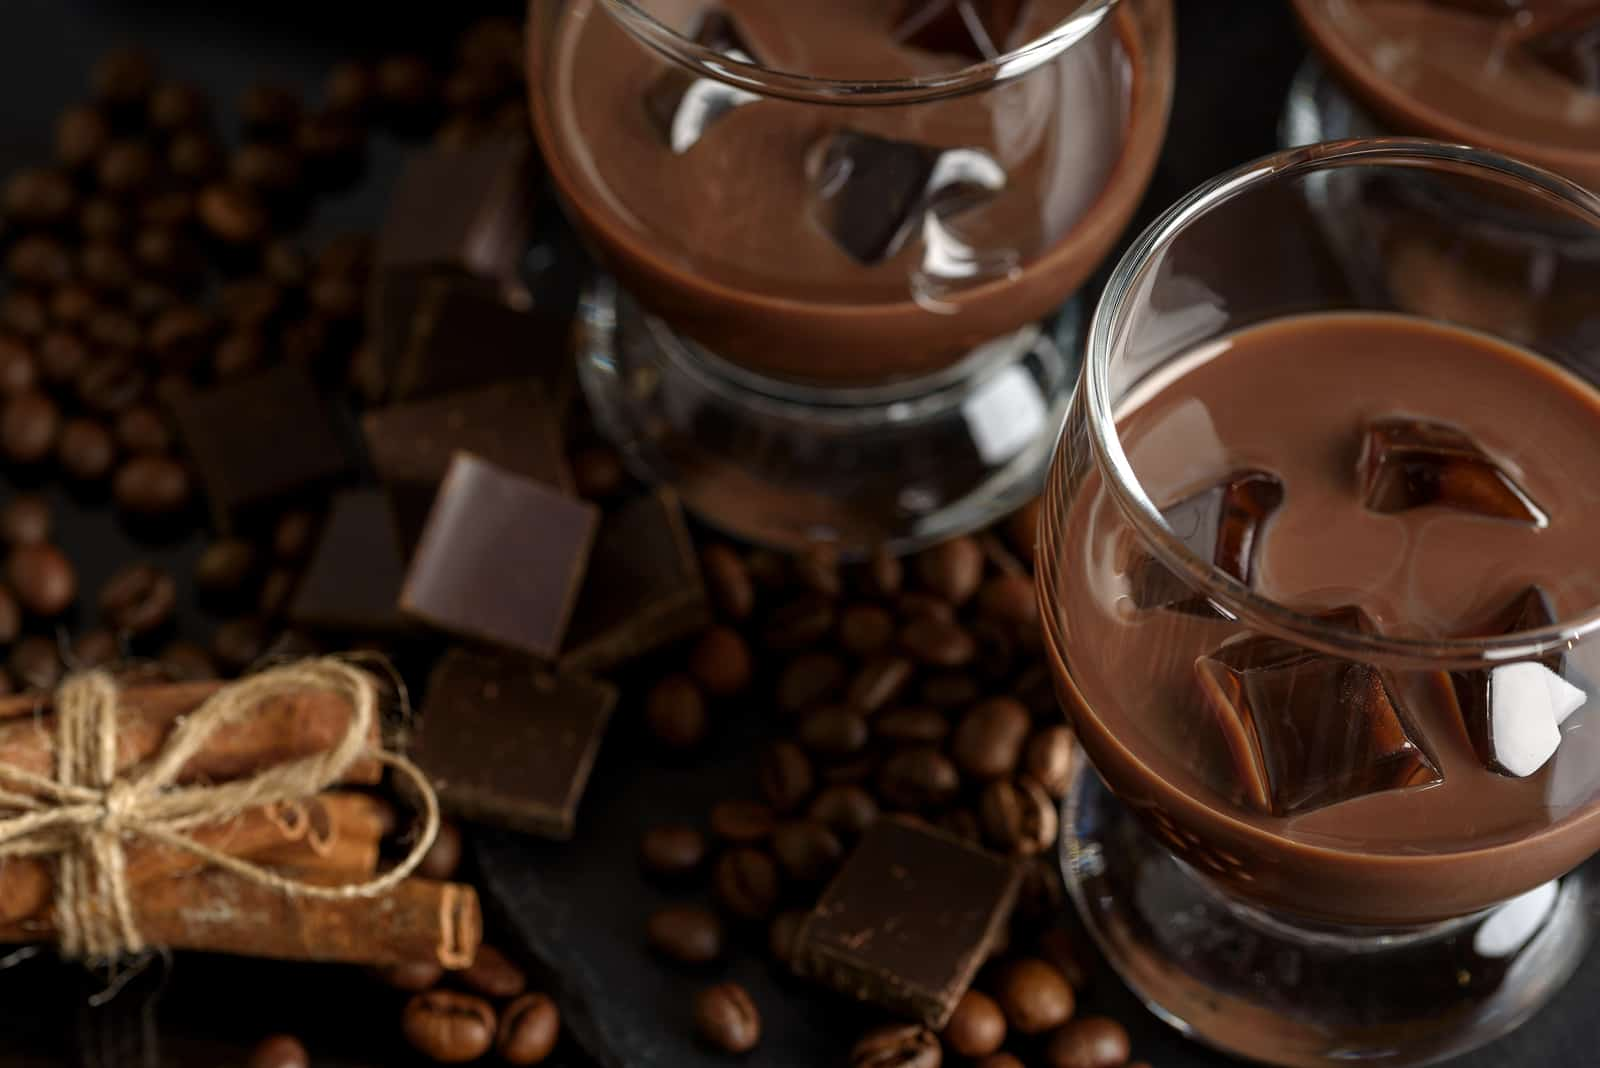 Indulge in these Three, Sweet, Delicious Chocolate Cocktail Recipes